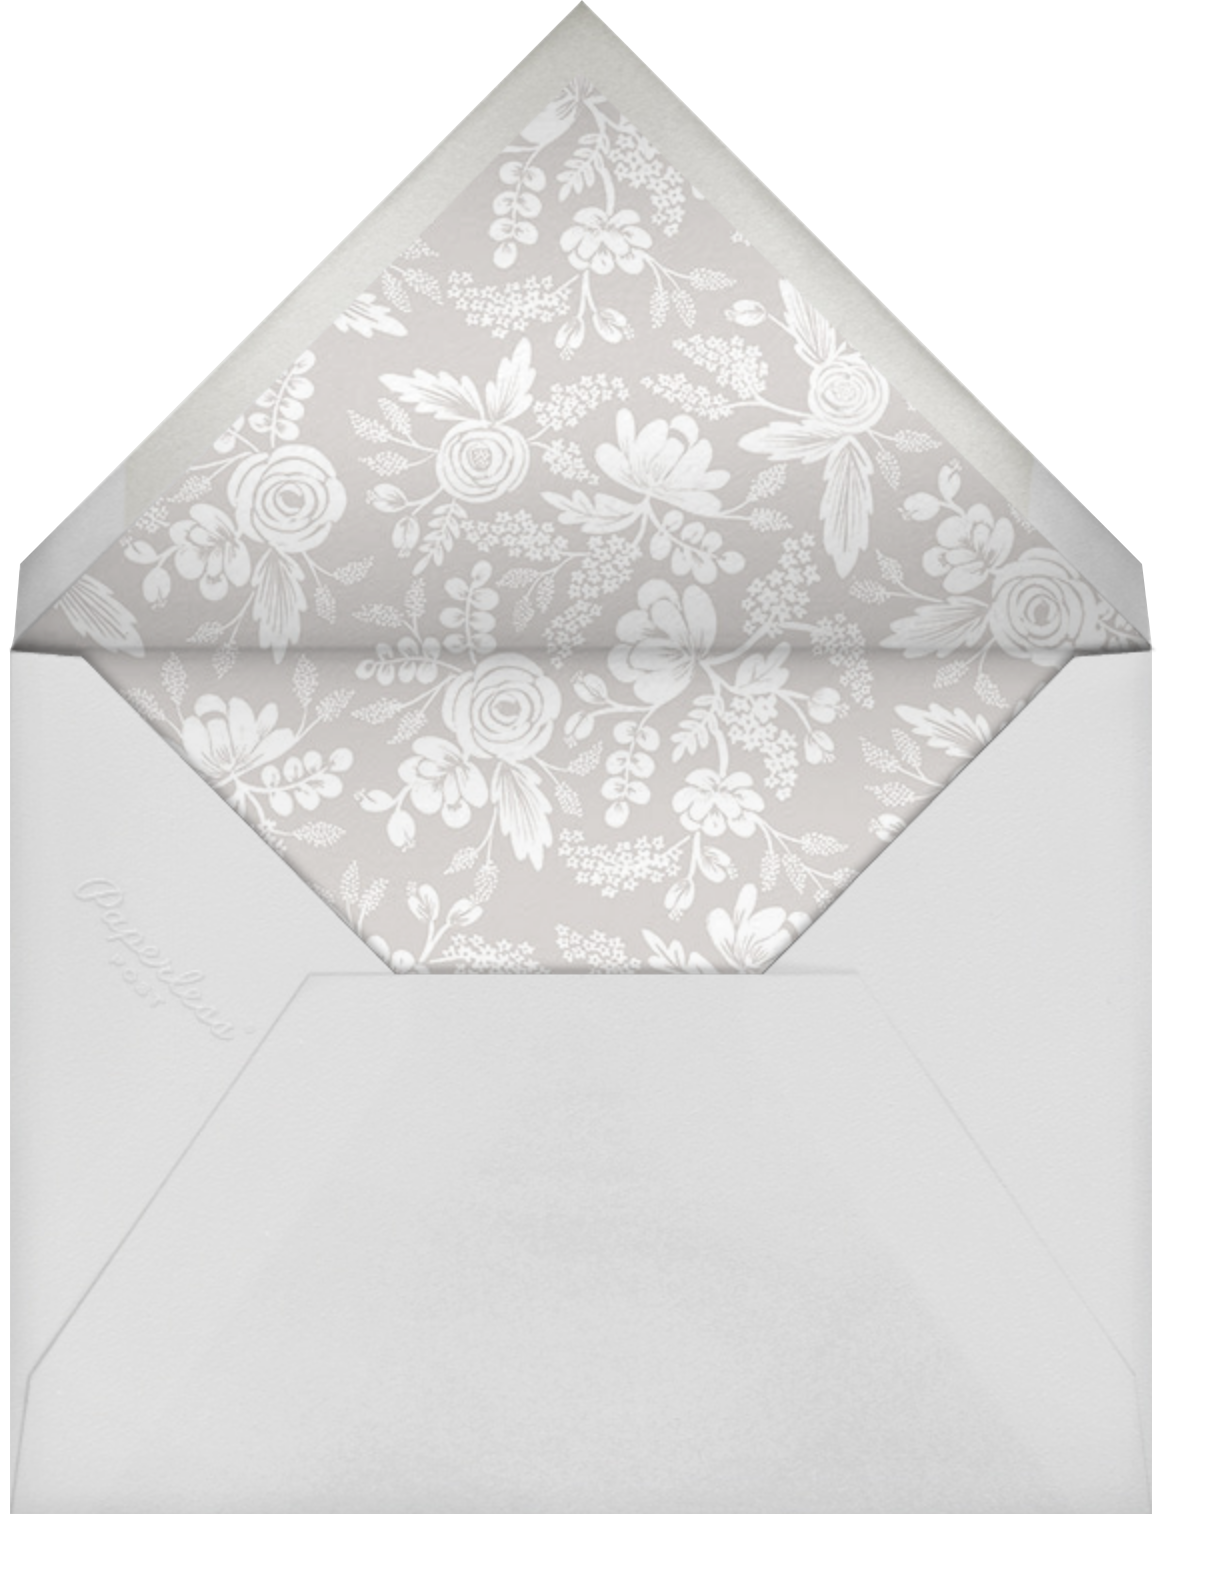 Heather and Lace (Tall Frame) - Silver/Merinuge - Rifle Paper Co. - Bridal shower - envelope back